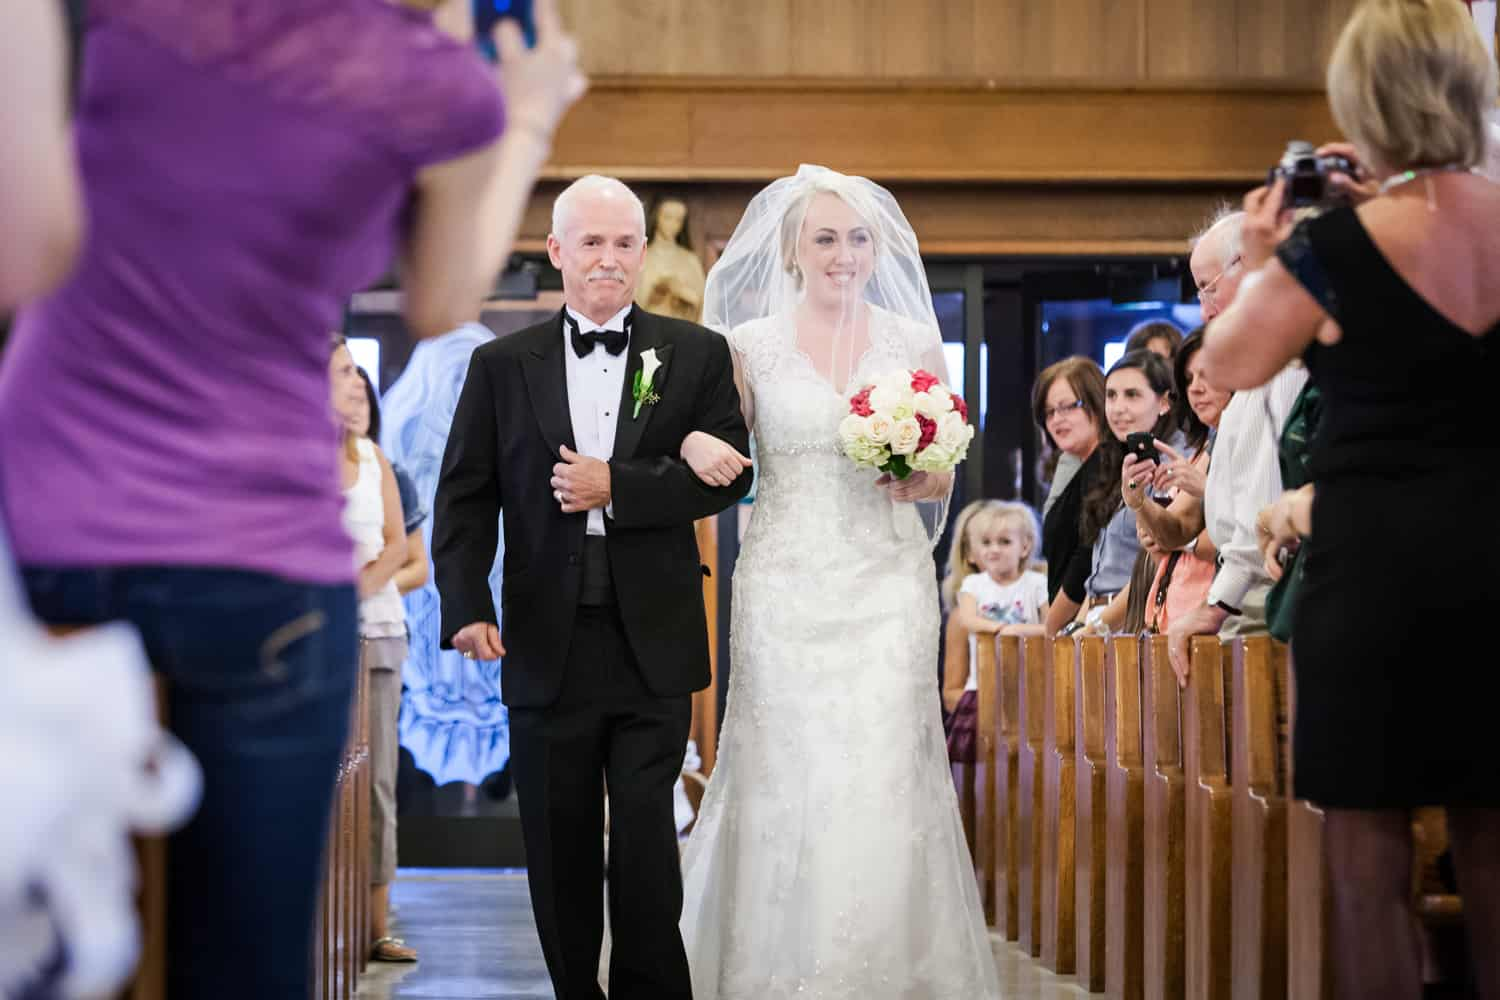 Bride and father walking down aisle for ceremony